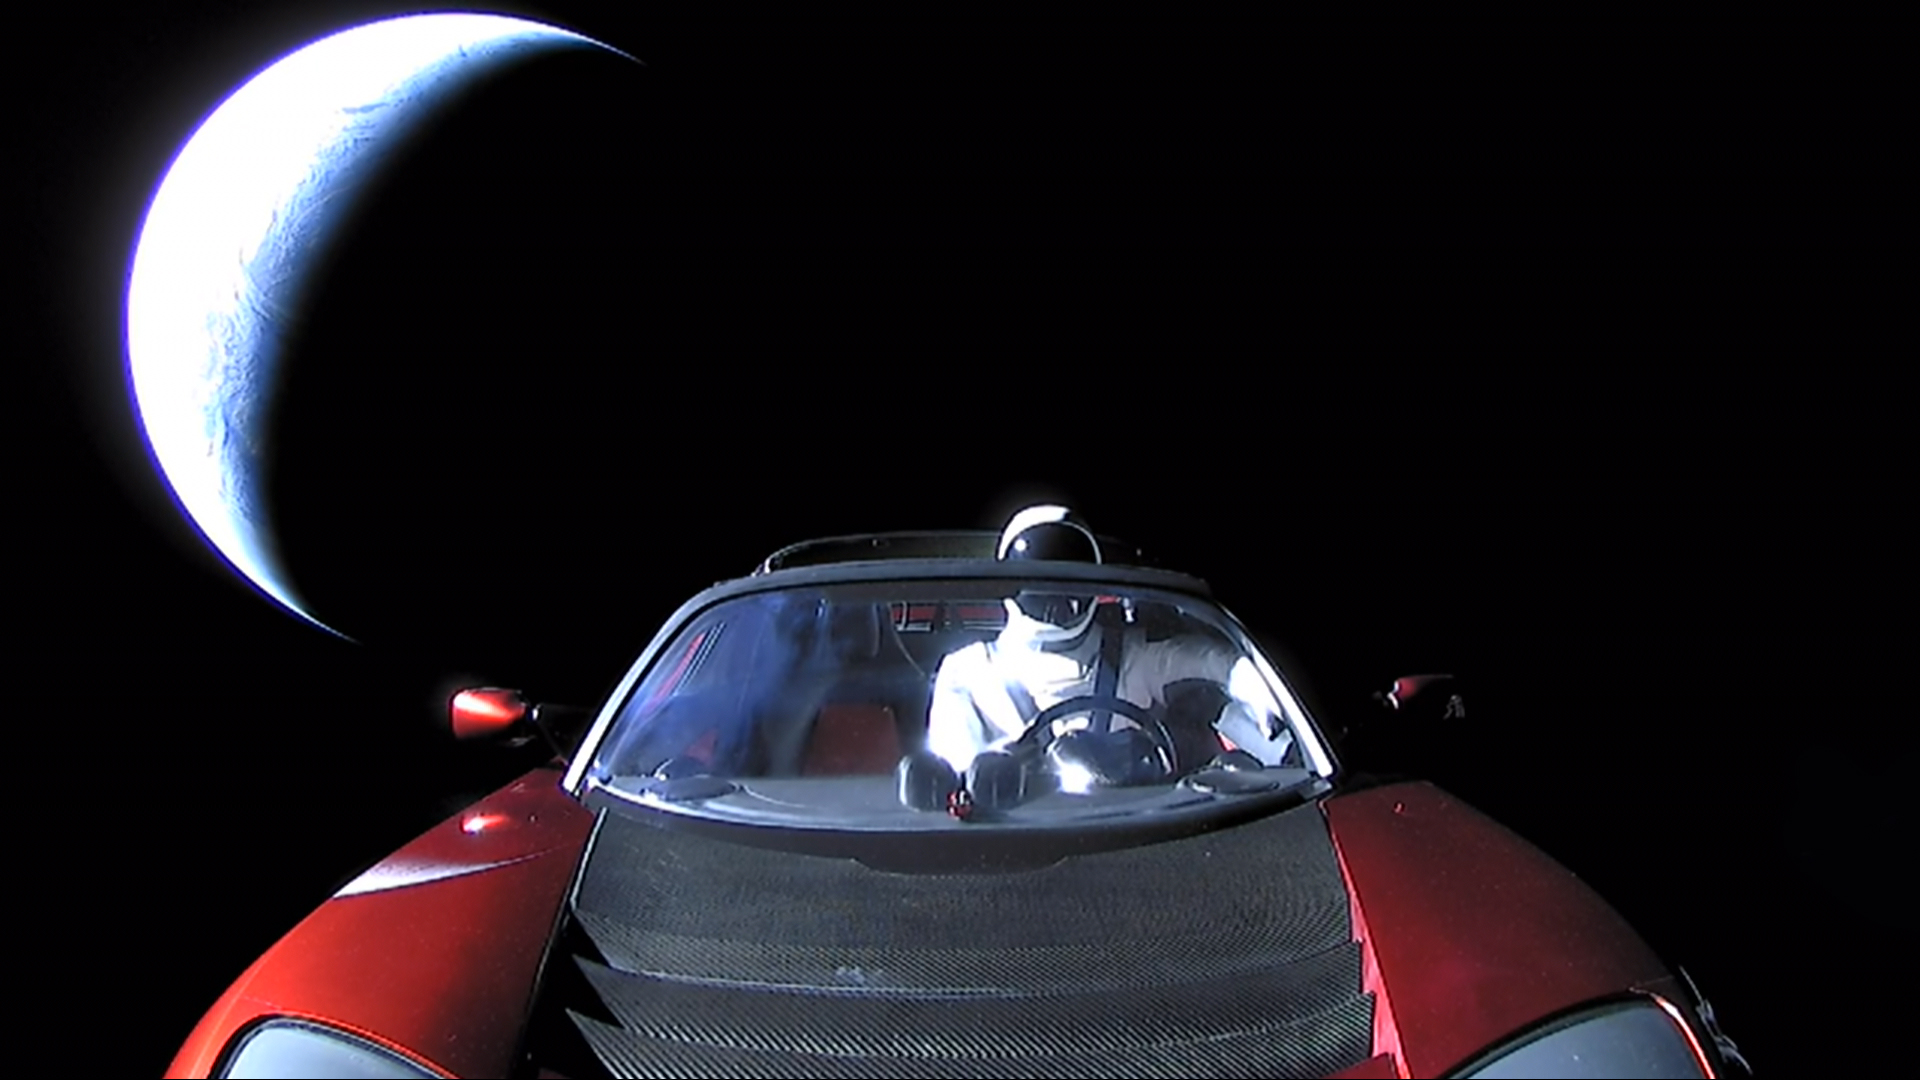 20180206-193930-elon-musk-tesla-roadster-falcon-heavy-demo-mission-front-earth-last